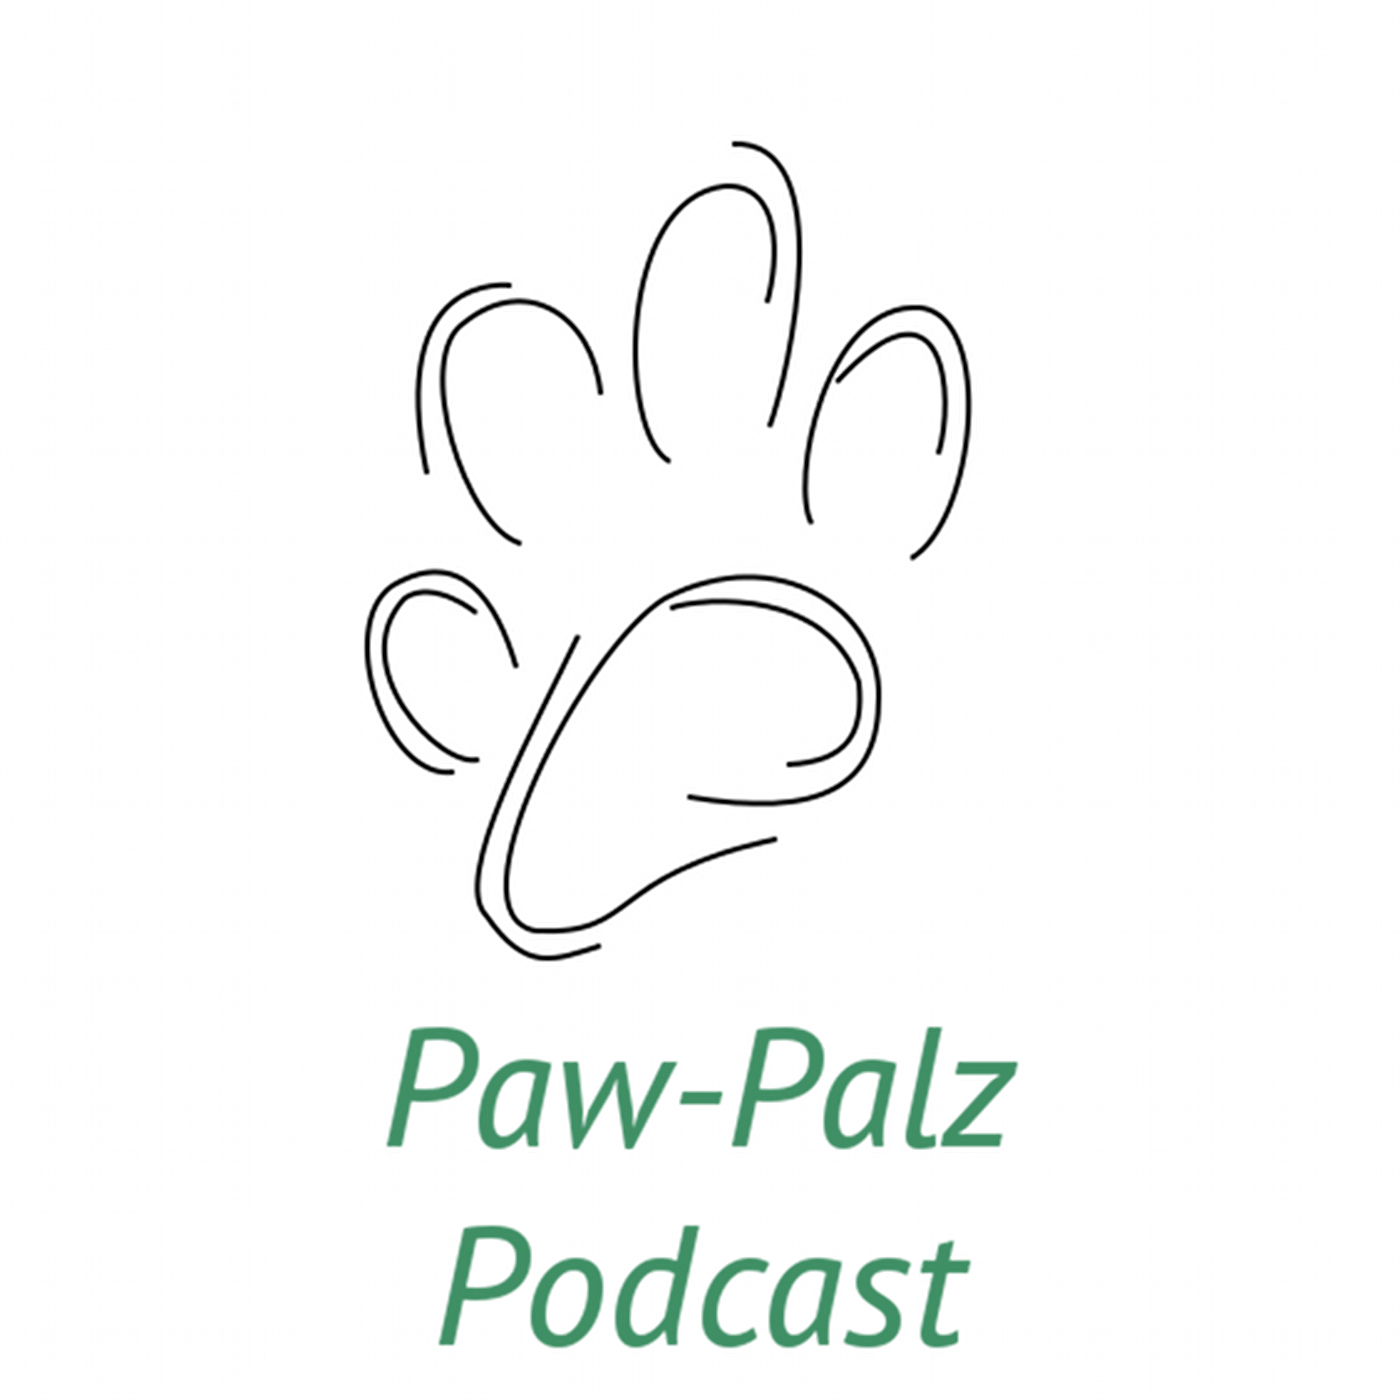 The Paw Palz Podcast Episode 9 Traveling With Your Dog